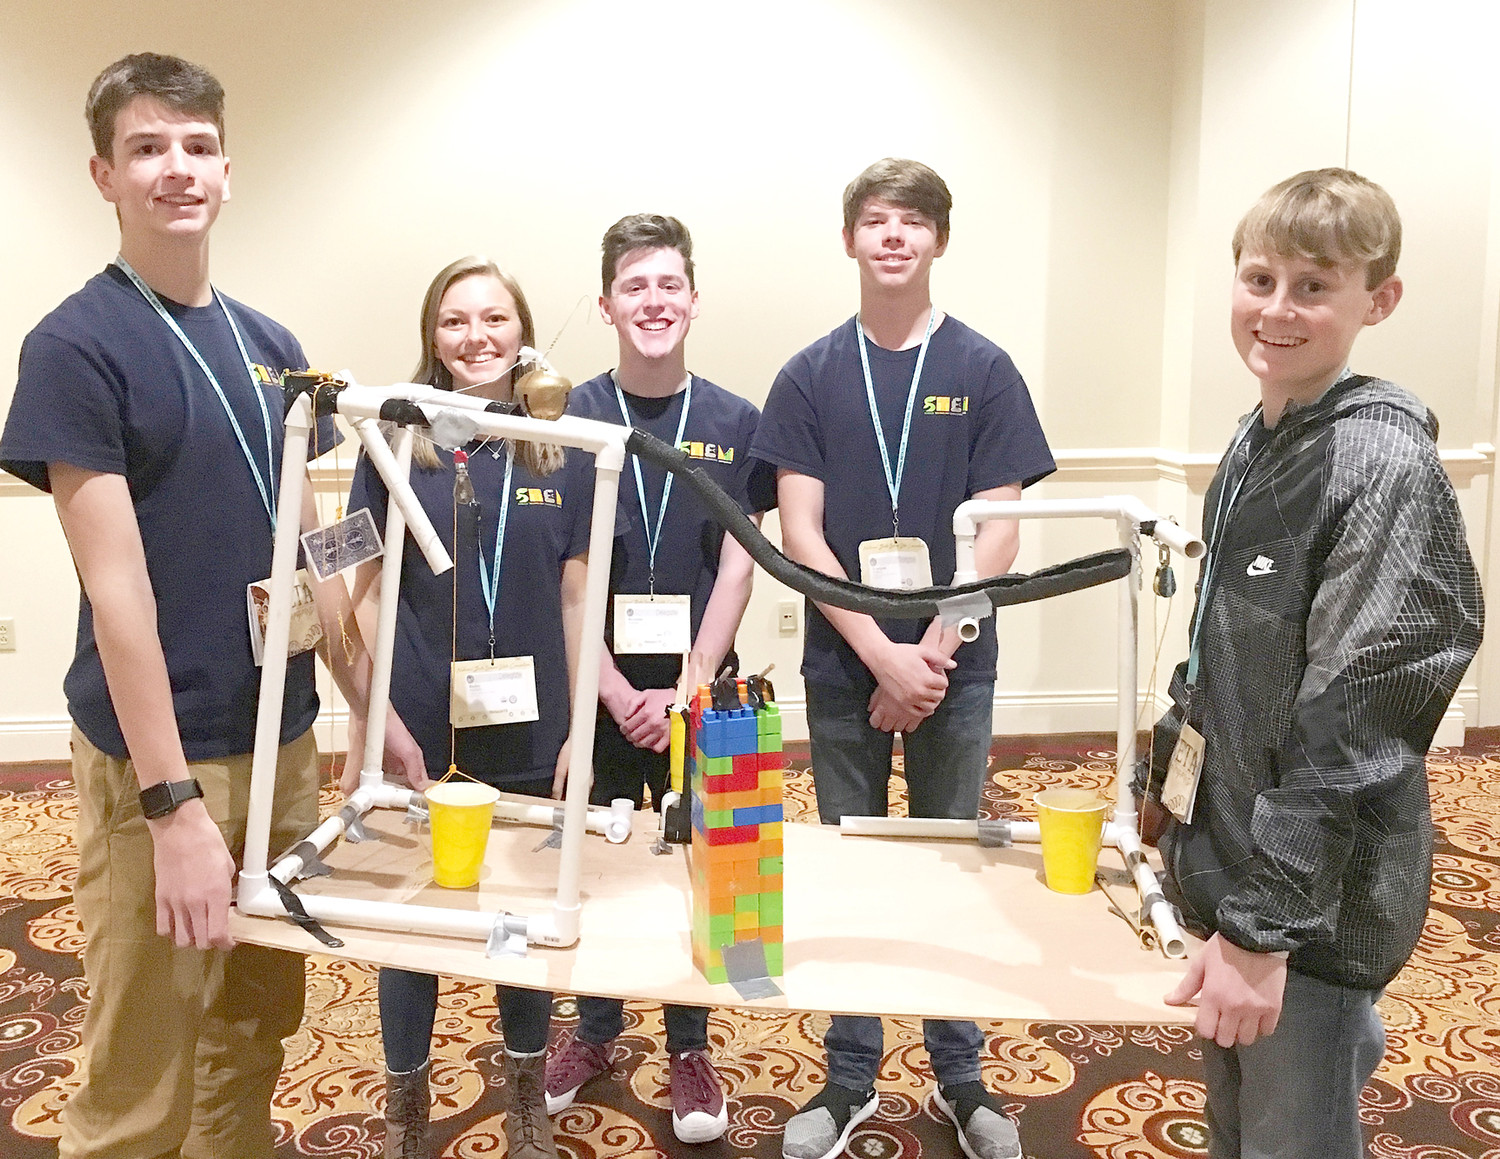 STUDENTS Jake Smith, Bailey Mullett, Brandon Solsbee, Traegan Gober and Blake Campbell competed and placed third overall in the Beta Build category while representing Walker Valley High School in the recent state Beta Club convention. They built a Rube Goldberg device with certain specifications in just two hours. WVHS took 35 students to compete, and they won 10 state titles. They showed their skill in academic subjects, photography, advertising, visual arts, robotics, speech and more.